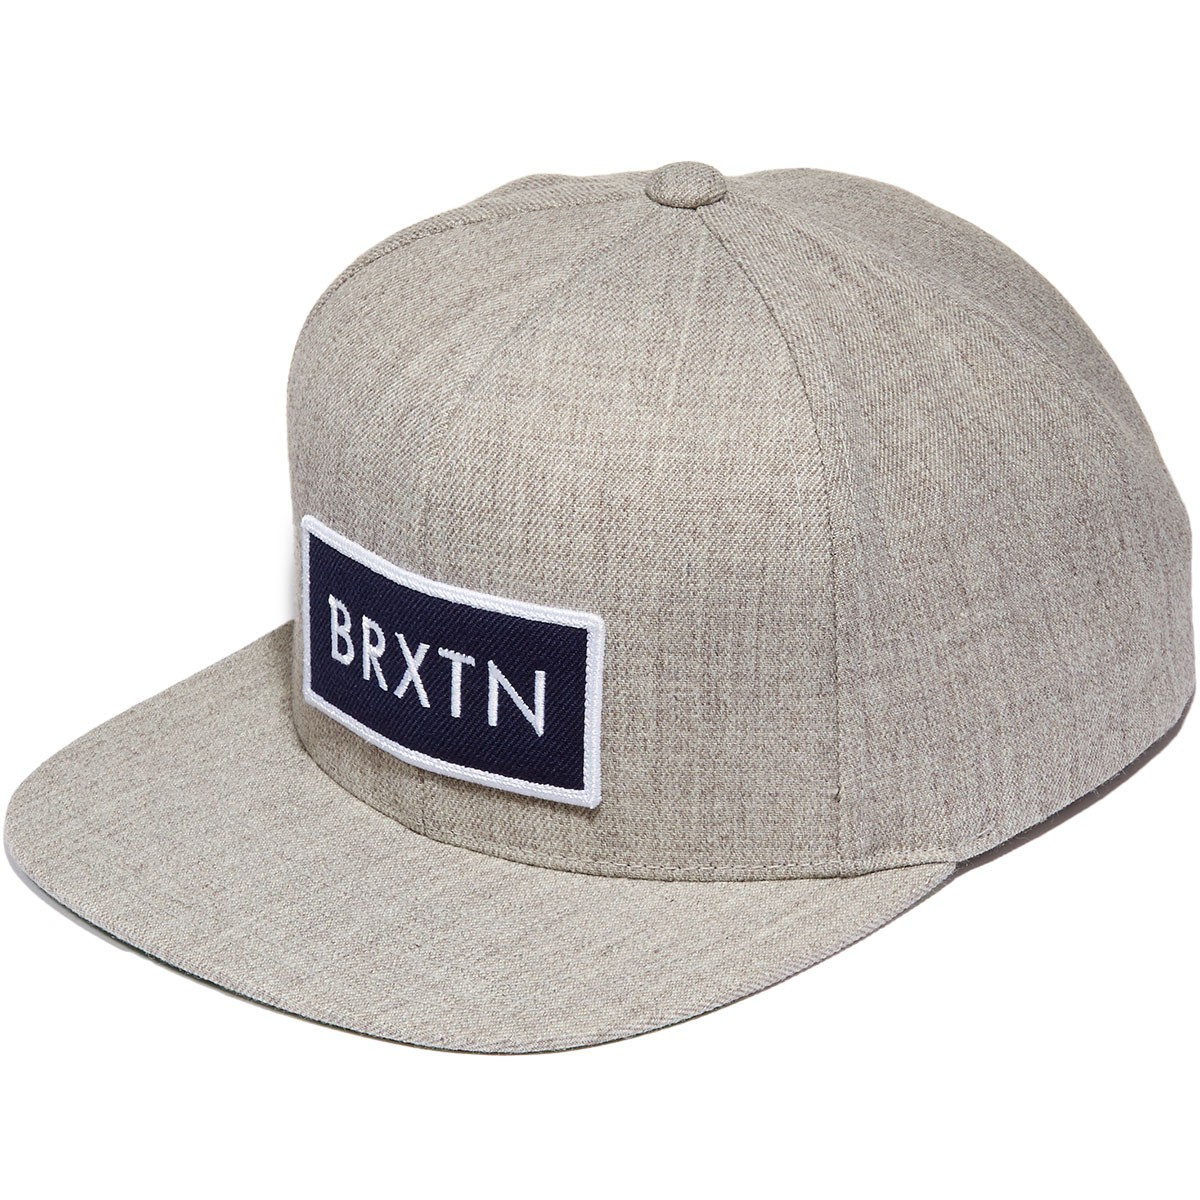 Brixton Rift Snapback Hat - Heather Grey/Navy